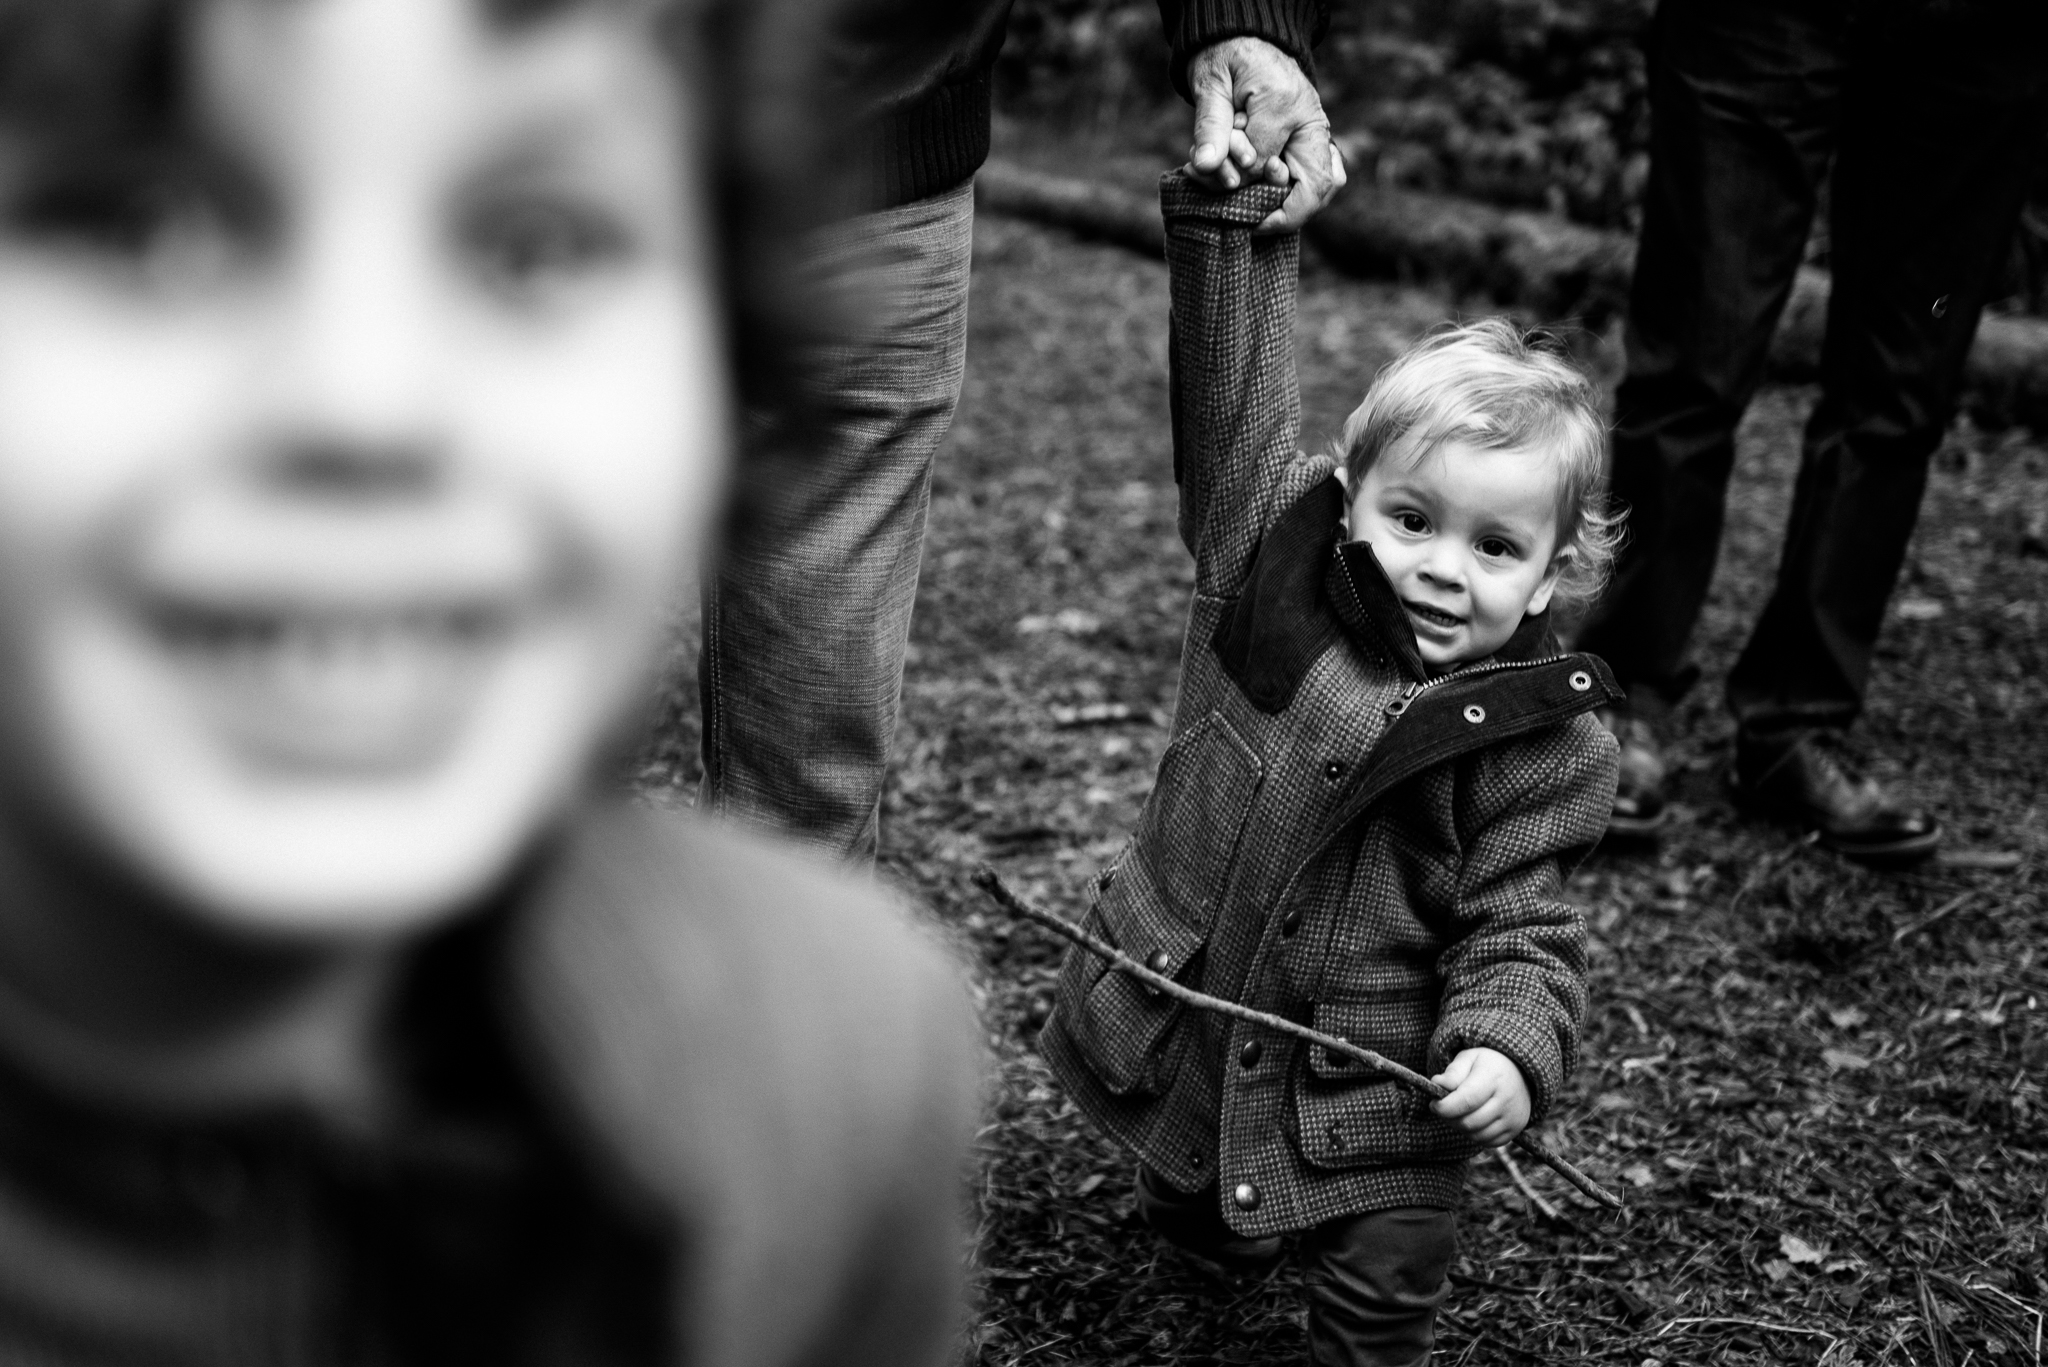 Autumn Documentary Lifestyle Family Photography at Clent Hills, Worcestershire Country Park countryside outdoors nature - Jenny Harper-1.jpg